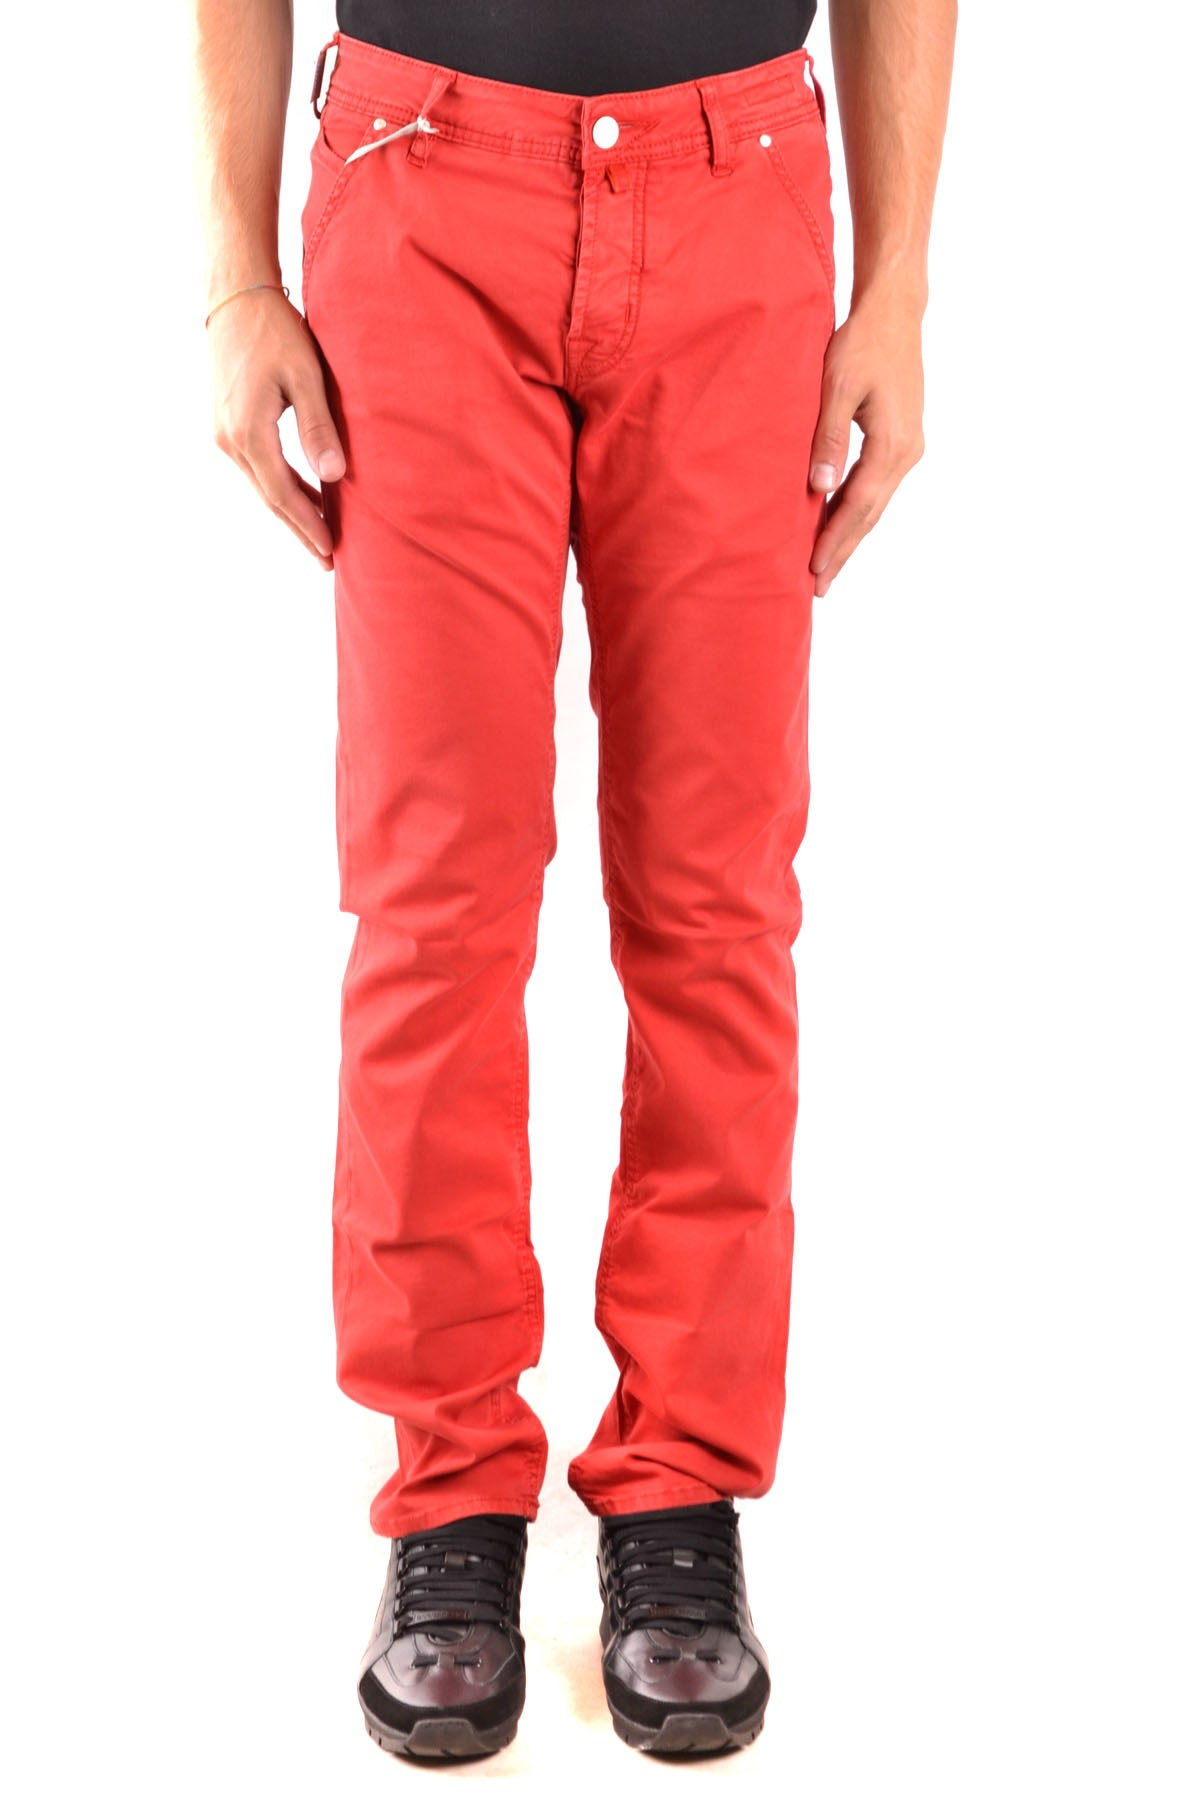 Jeans Jacob Cohen-30-Product Details Terms: New With LabelYear: 2019Main Color: RedGender: ManMade In: ItalyManufacturer Part Number: 00566V-5101Size: UsSeason: Spring / SummerClothing Type: JeansComposition: Cotton 55%, Elastane 3%, Lyocell 42%-Keyomi-Sook